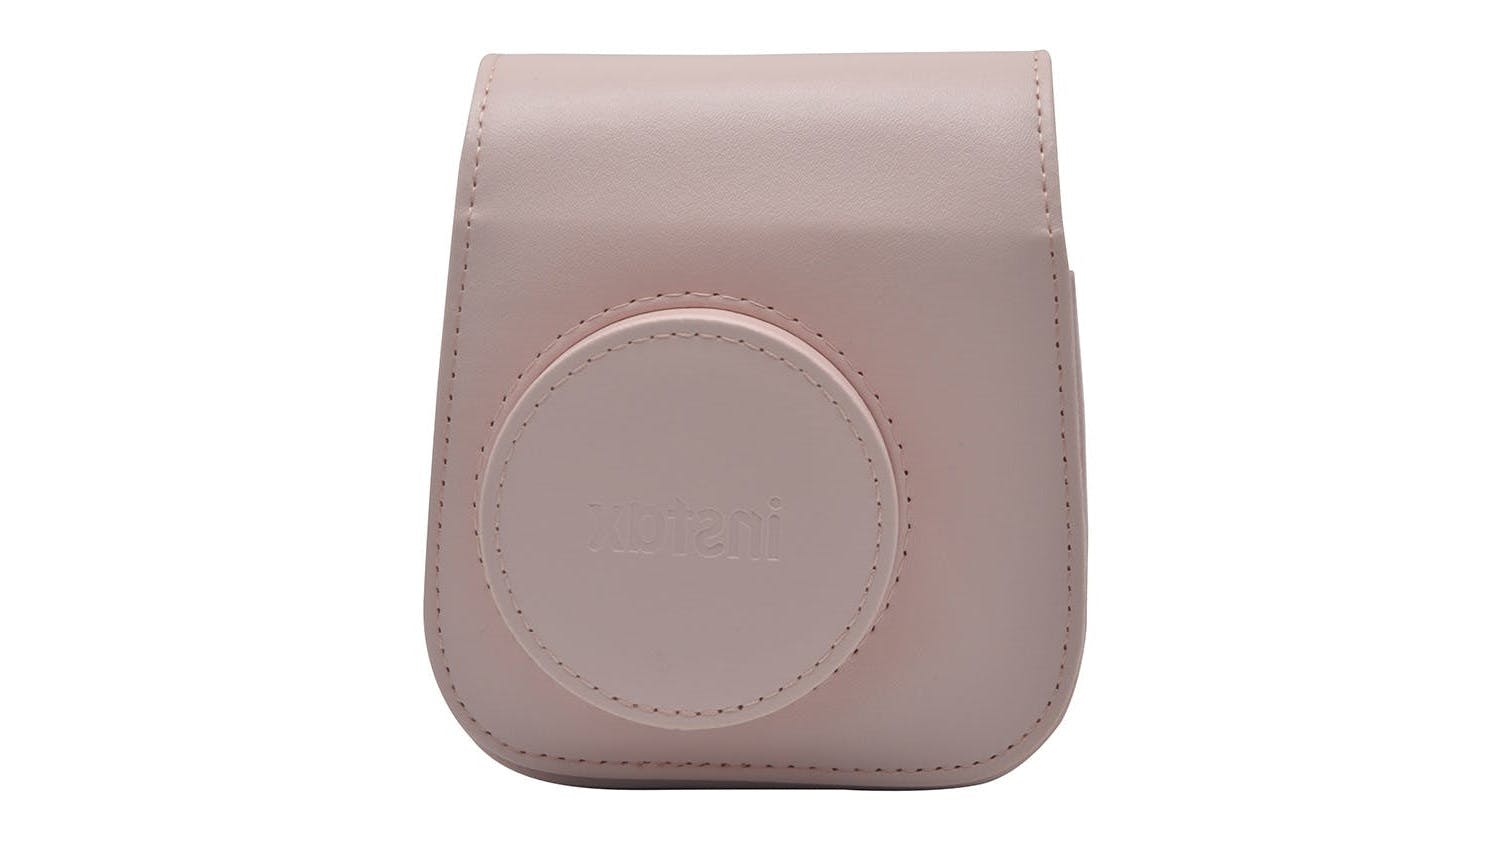 Instax Mini 11 Case - Pink